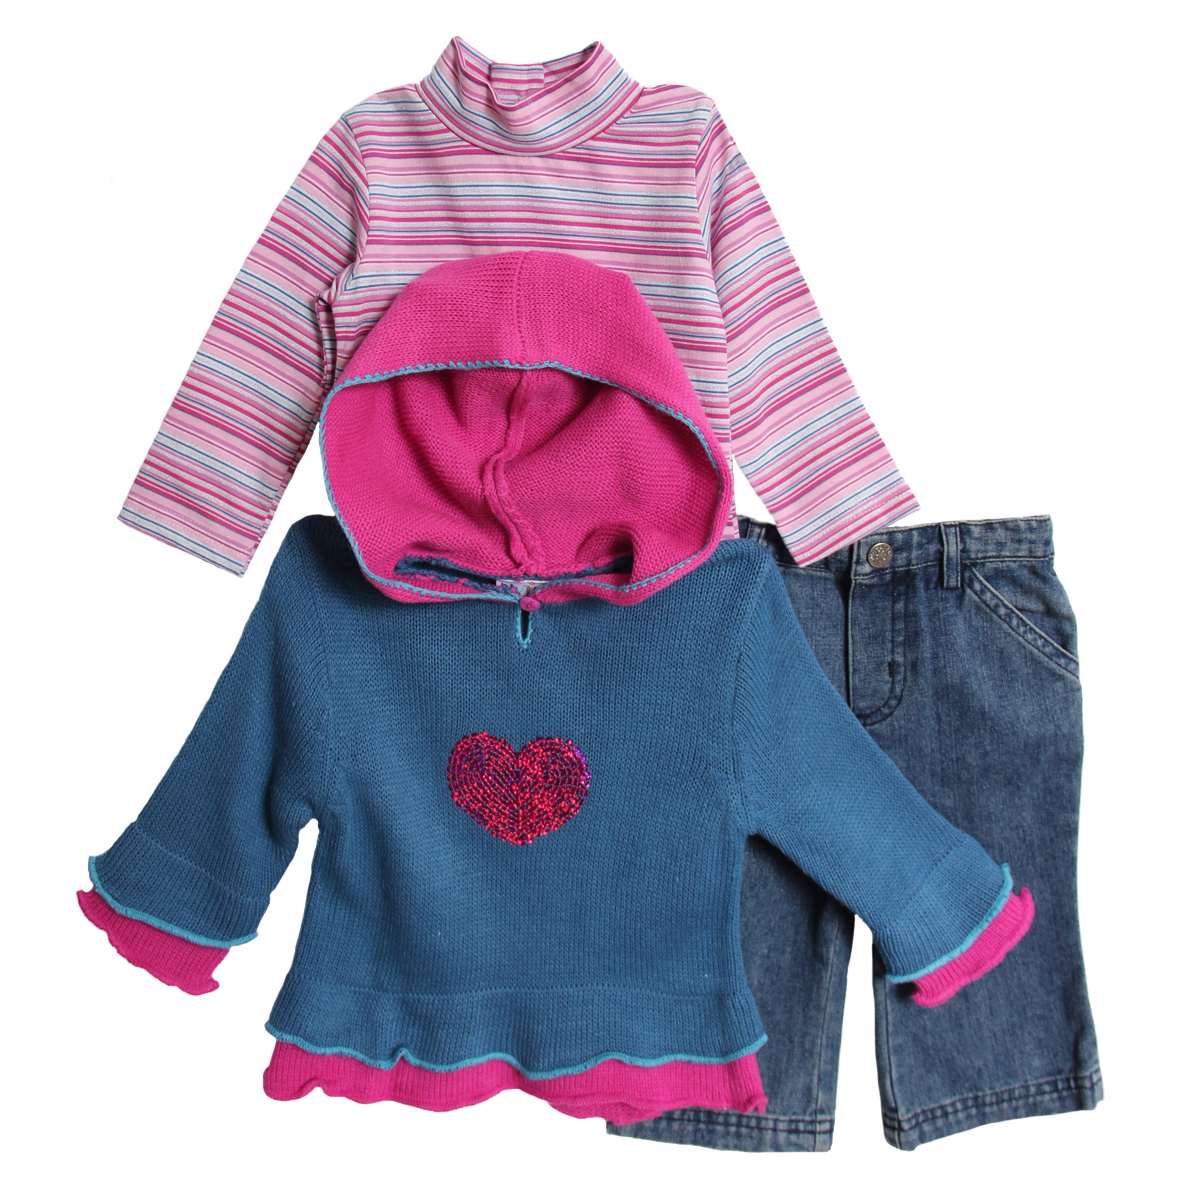 B.T. Kids Newborn Baby Girls 3 Piece Blue Knit Hooded Sweater Turtleneck Jeans Set at Sears.com